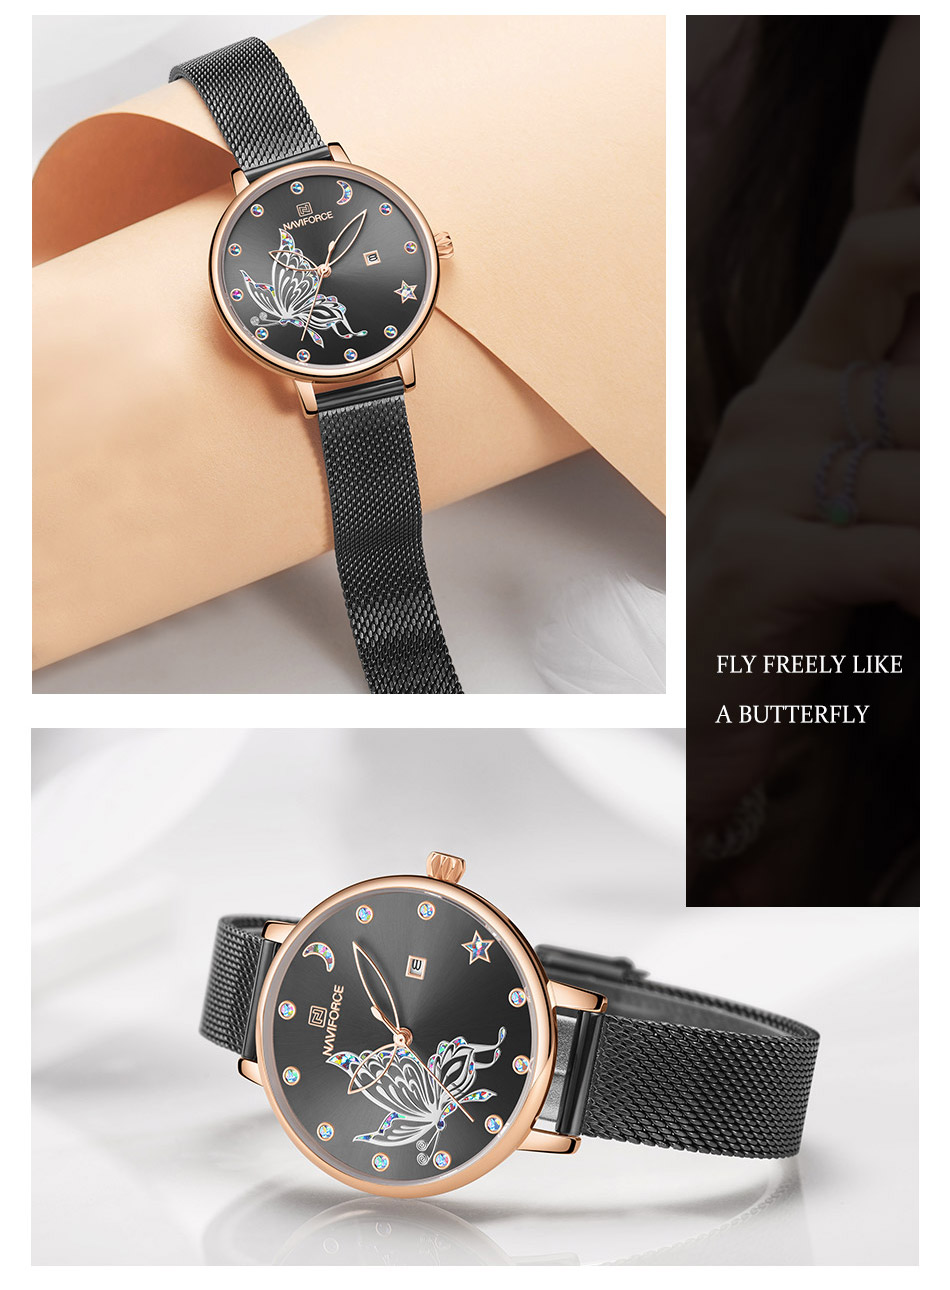 Hd8f67716863b4c89a87a87e96284b9abH - NAVIFORCE Luxury Brand Watch Women Fashion Dress Quartz Ladies Mesh Stainless Steel 3ATM Waterproof Casual Watches for Girl